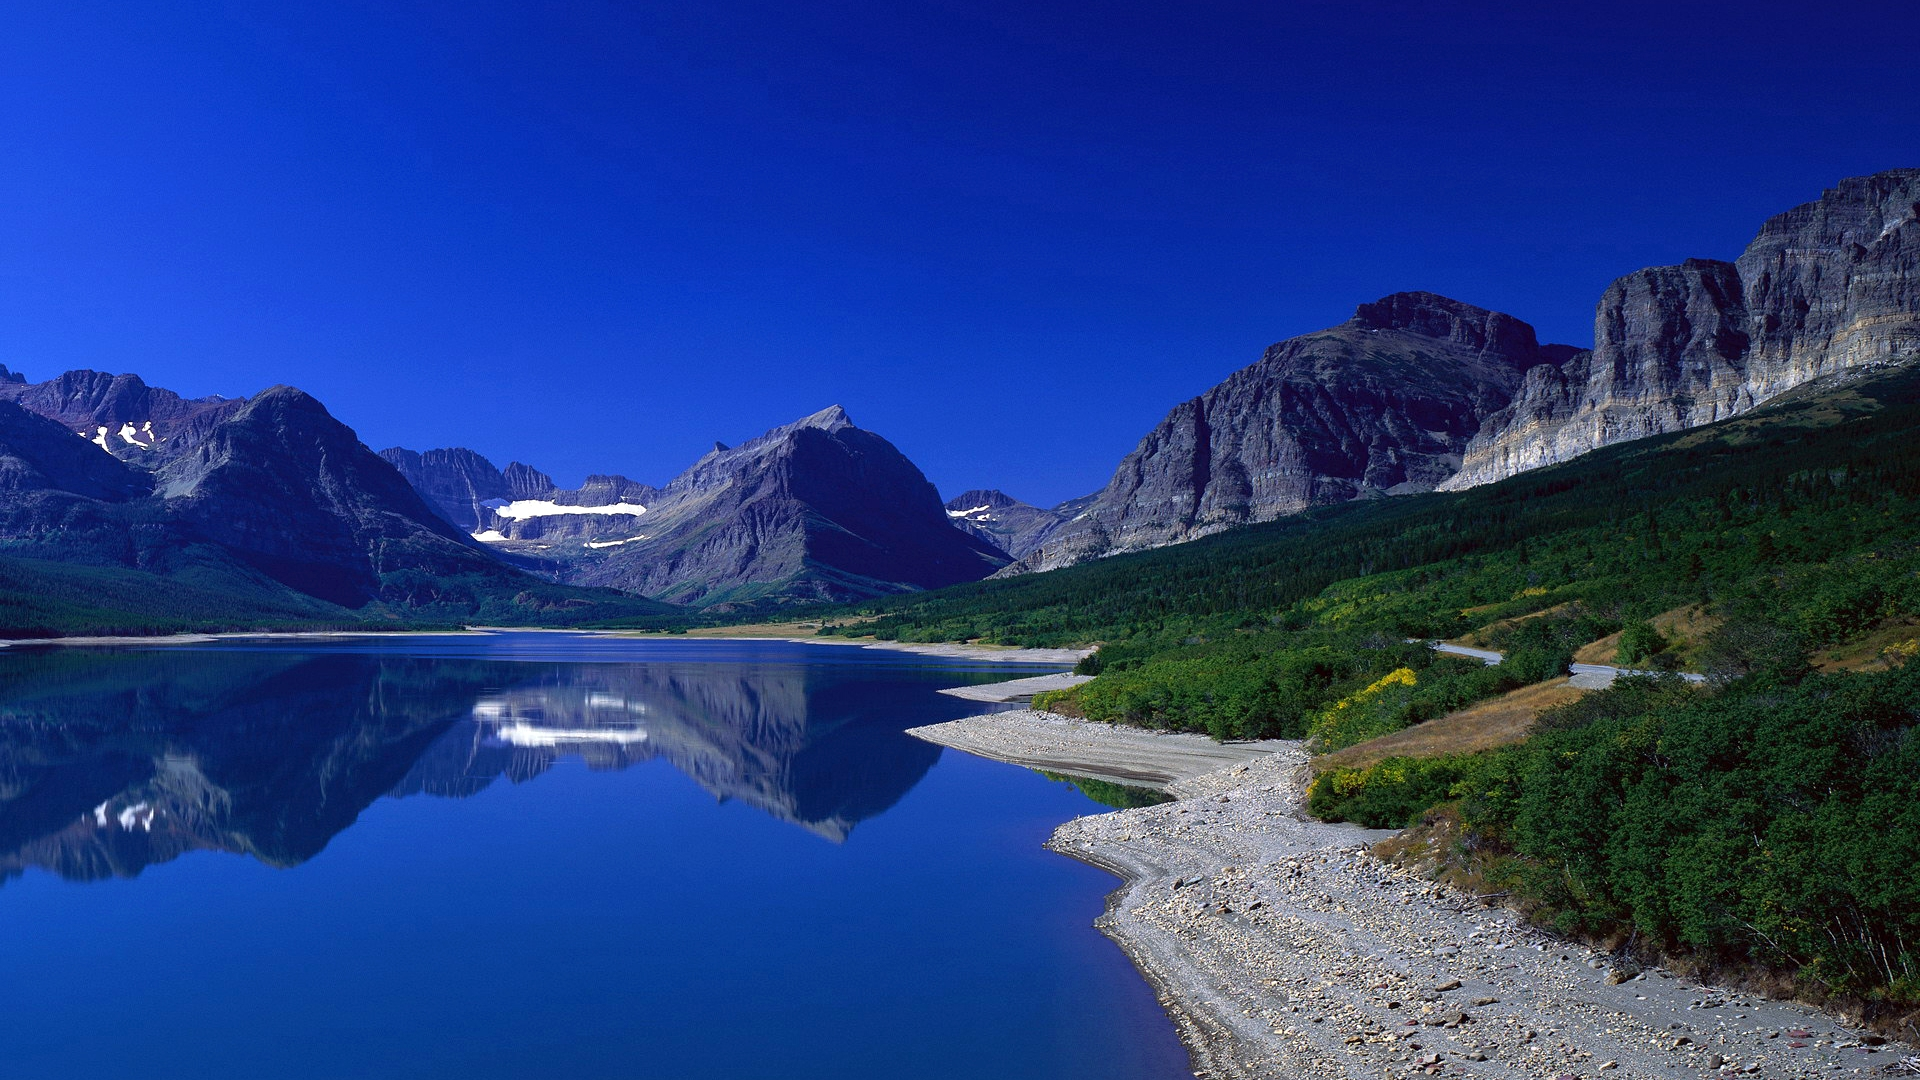 Mountain Top Lake Wallpaper Facebook Cover Top Mountain 1920x1080 Download Hd Wallpaper Wallpapertip